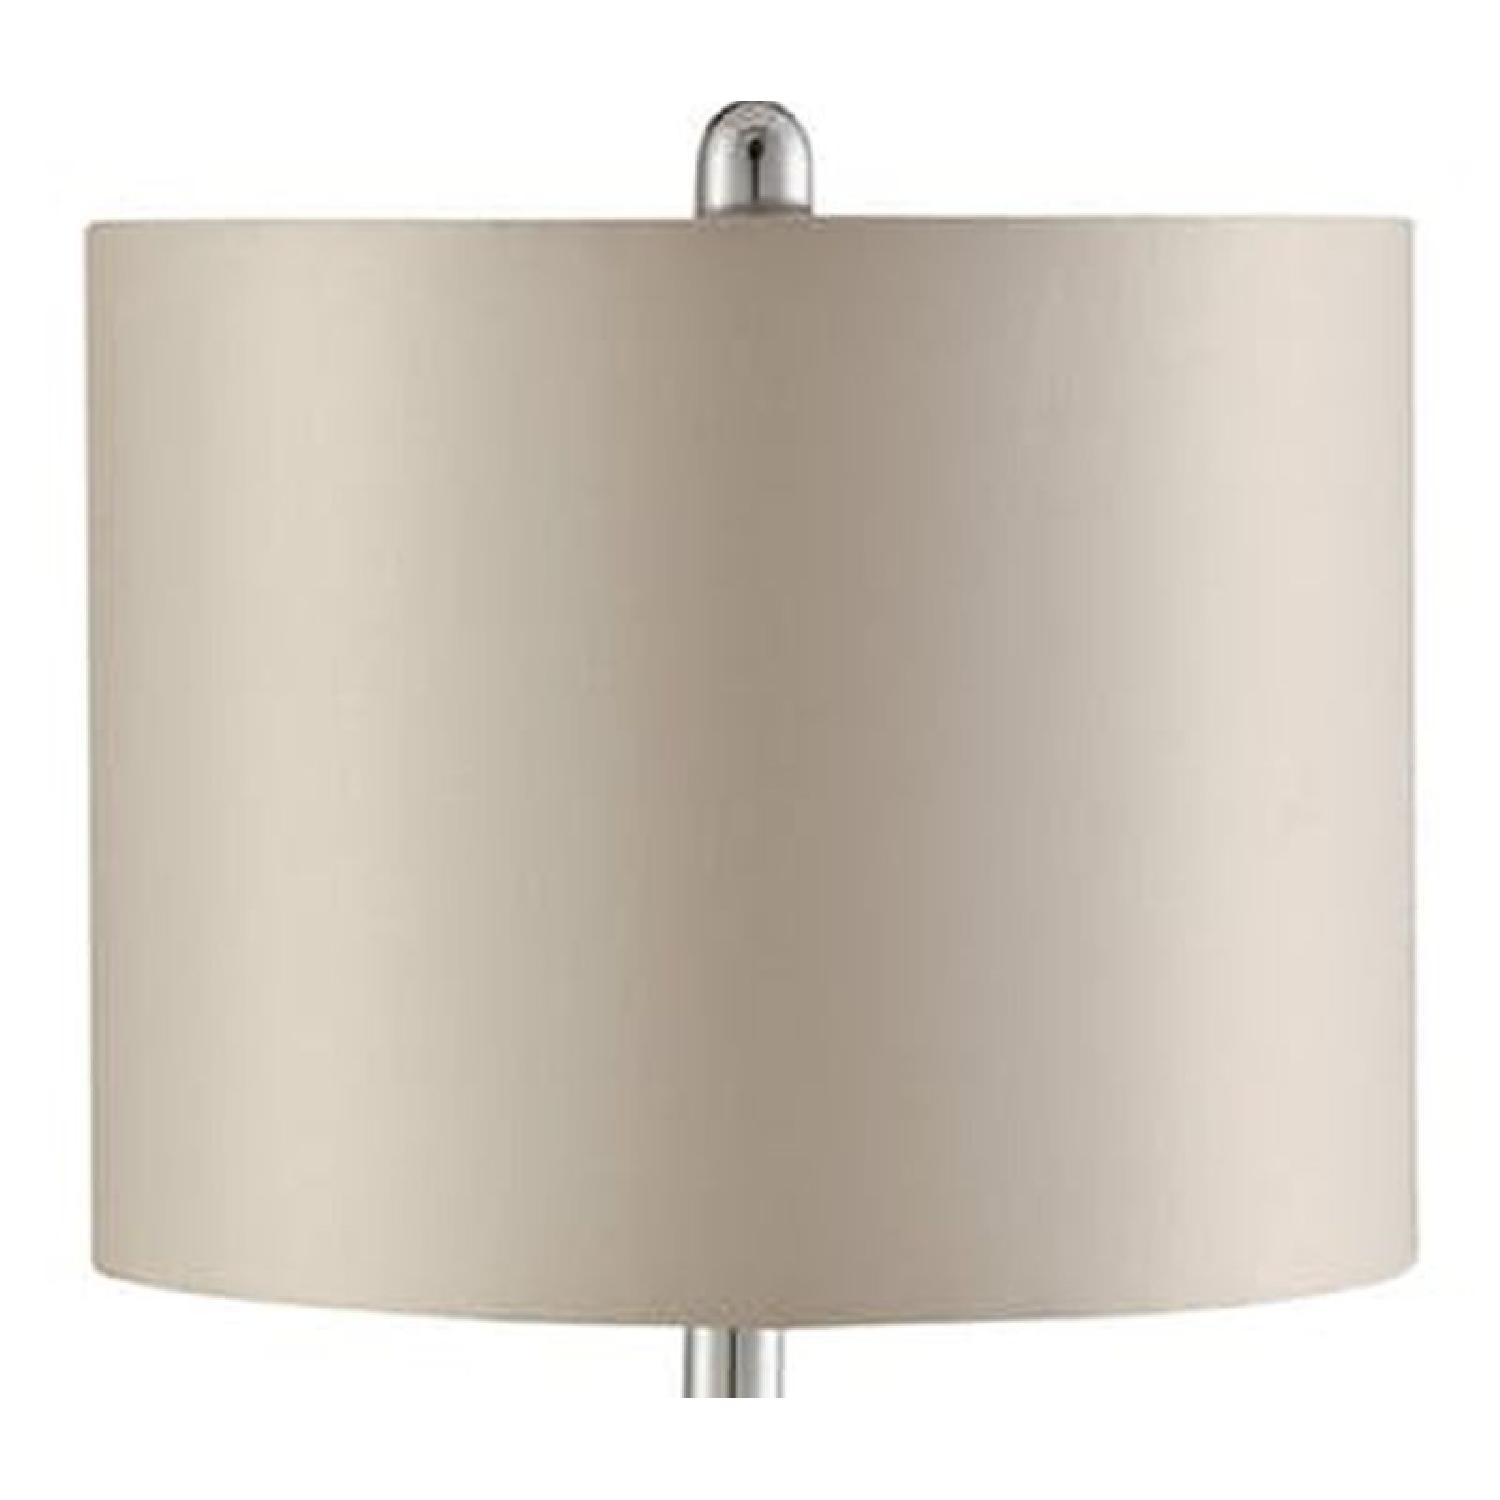 Table Lamp in Light Gold Base w/ Cut-Out Pattern - image-1